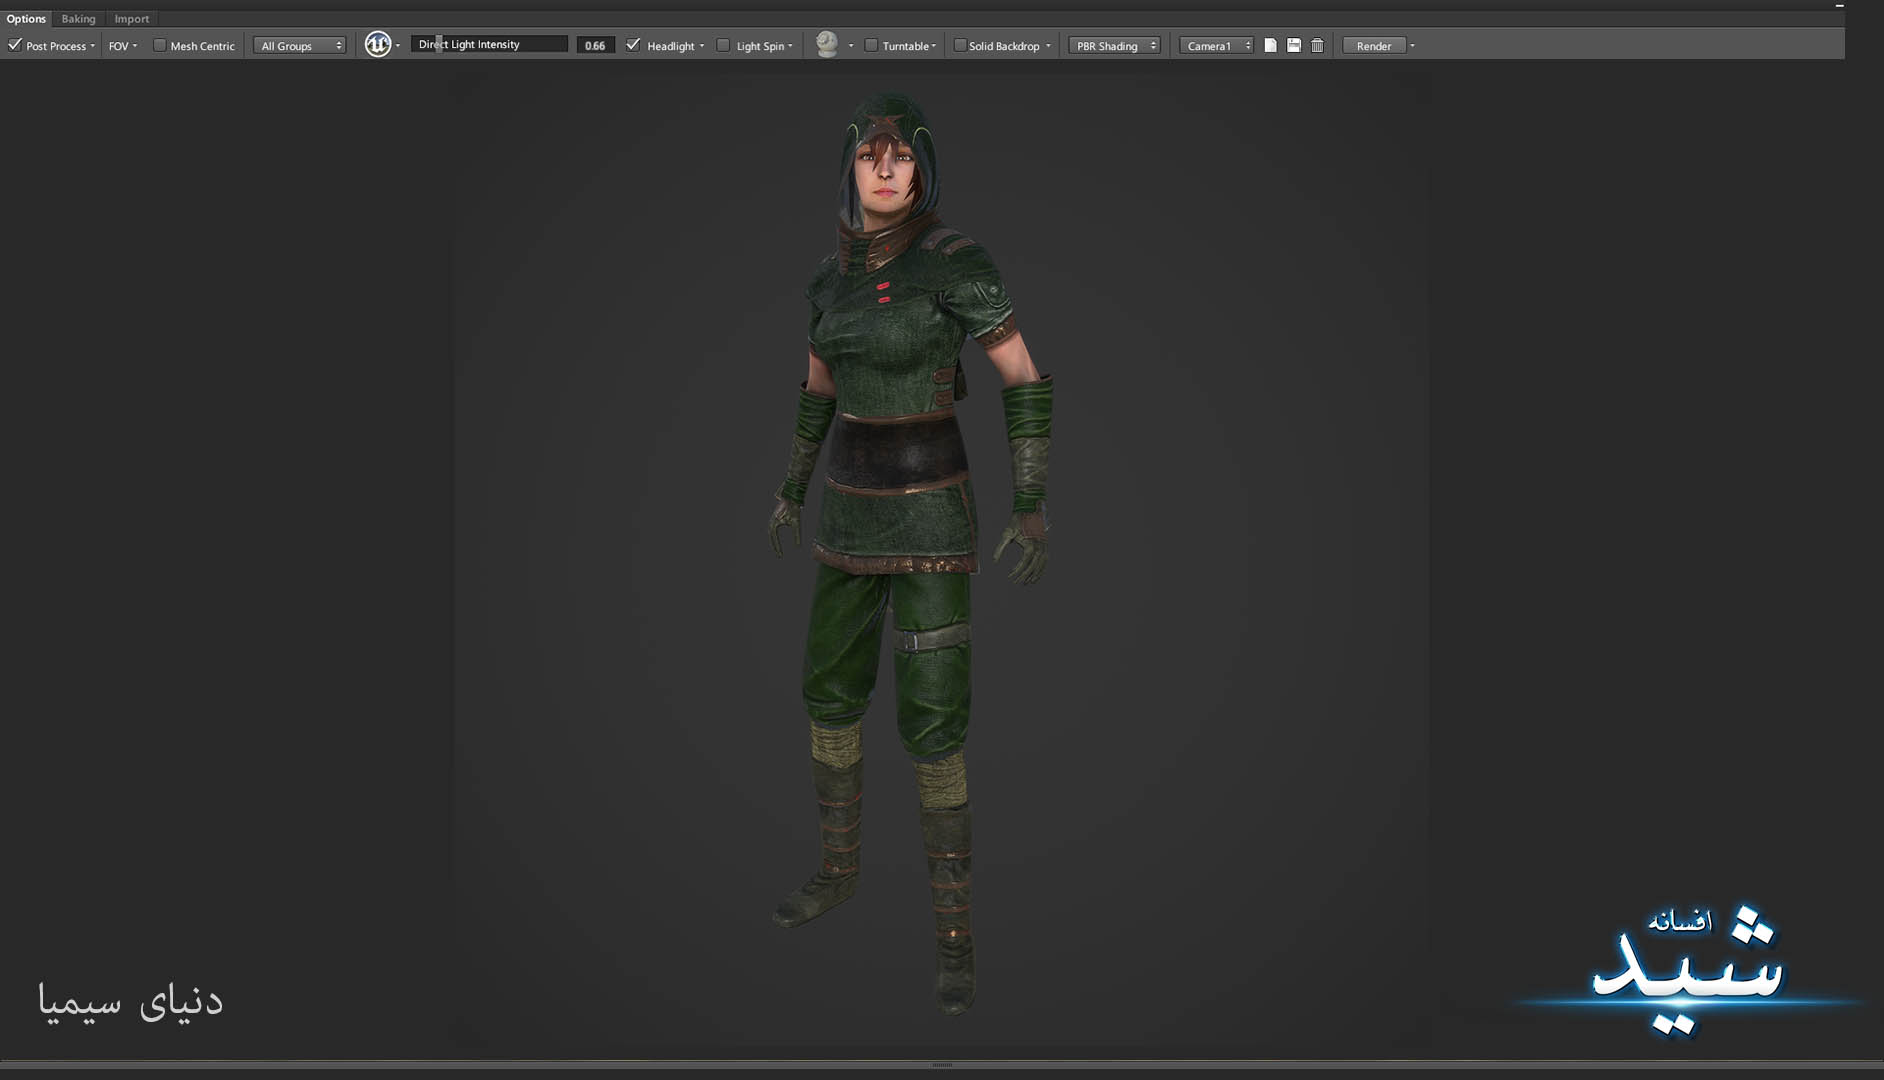 Legend of the light_Archer Character Texturing_Hadi Beheshti CG Artist Game Designer